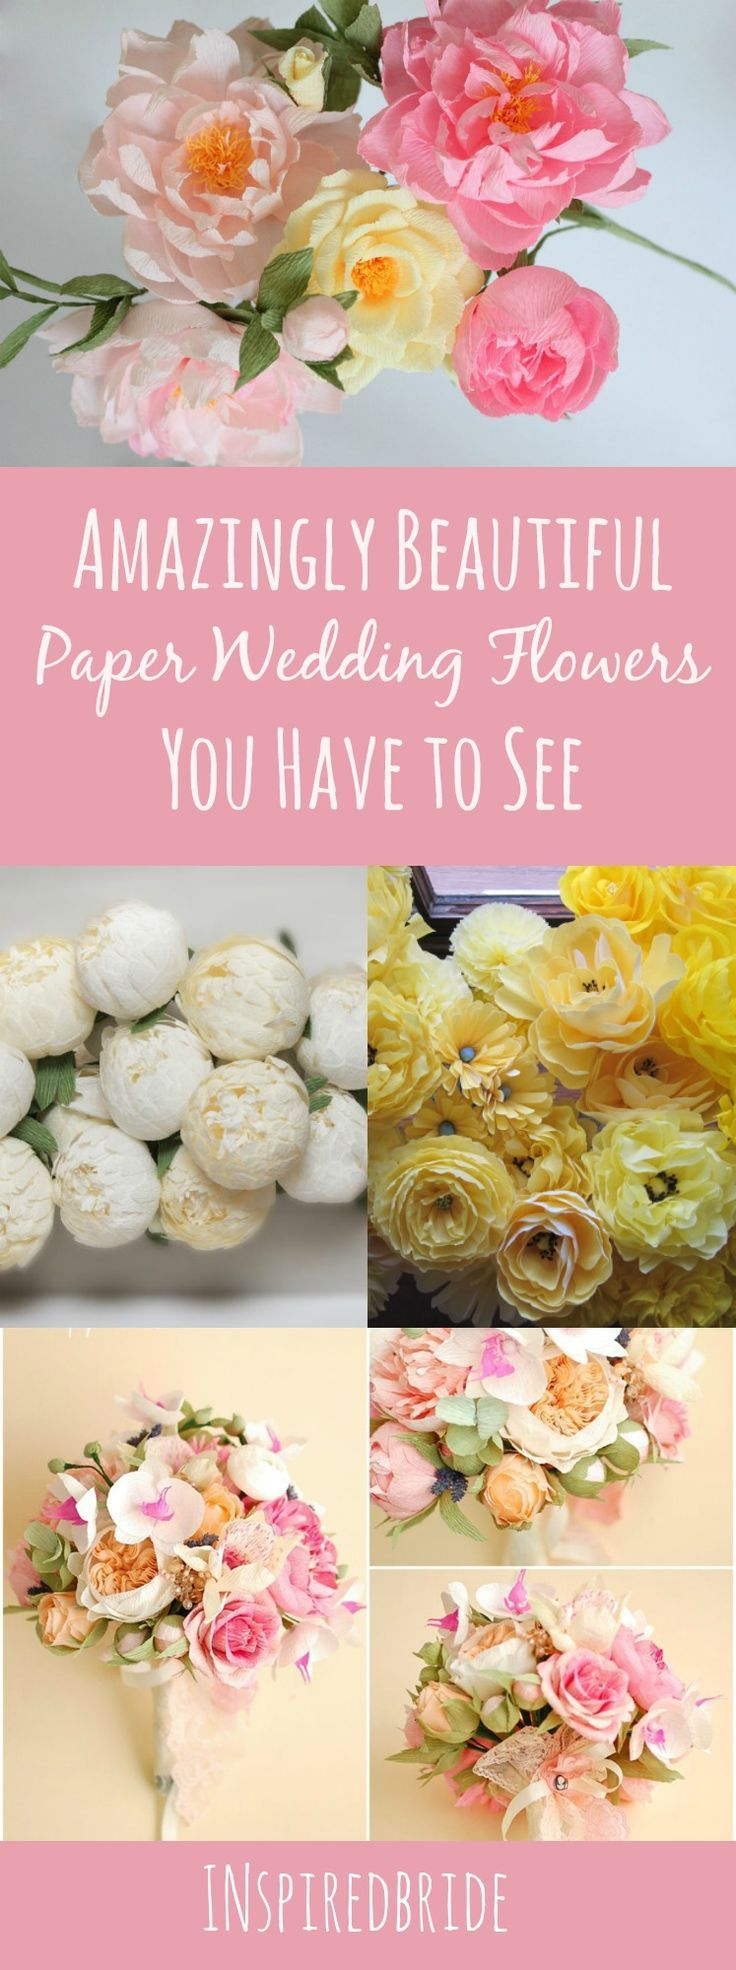 1732 best Wedding 101 images on Pinterest | Wedding trends, Summer ...